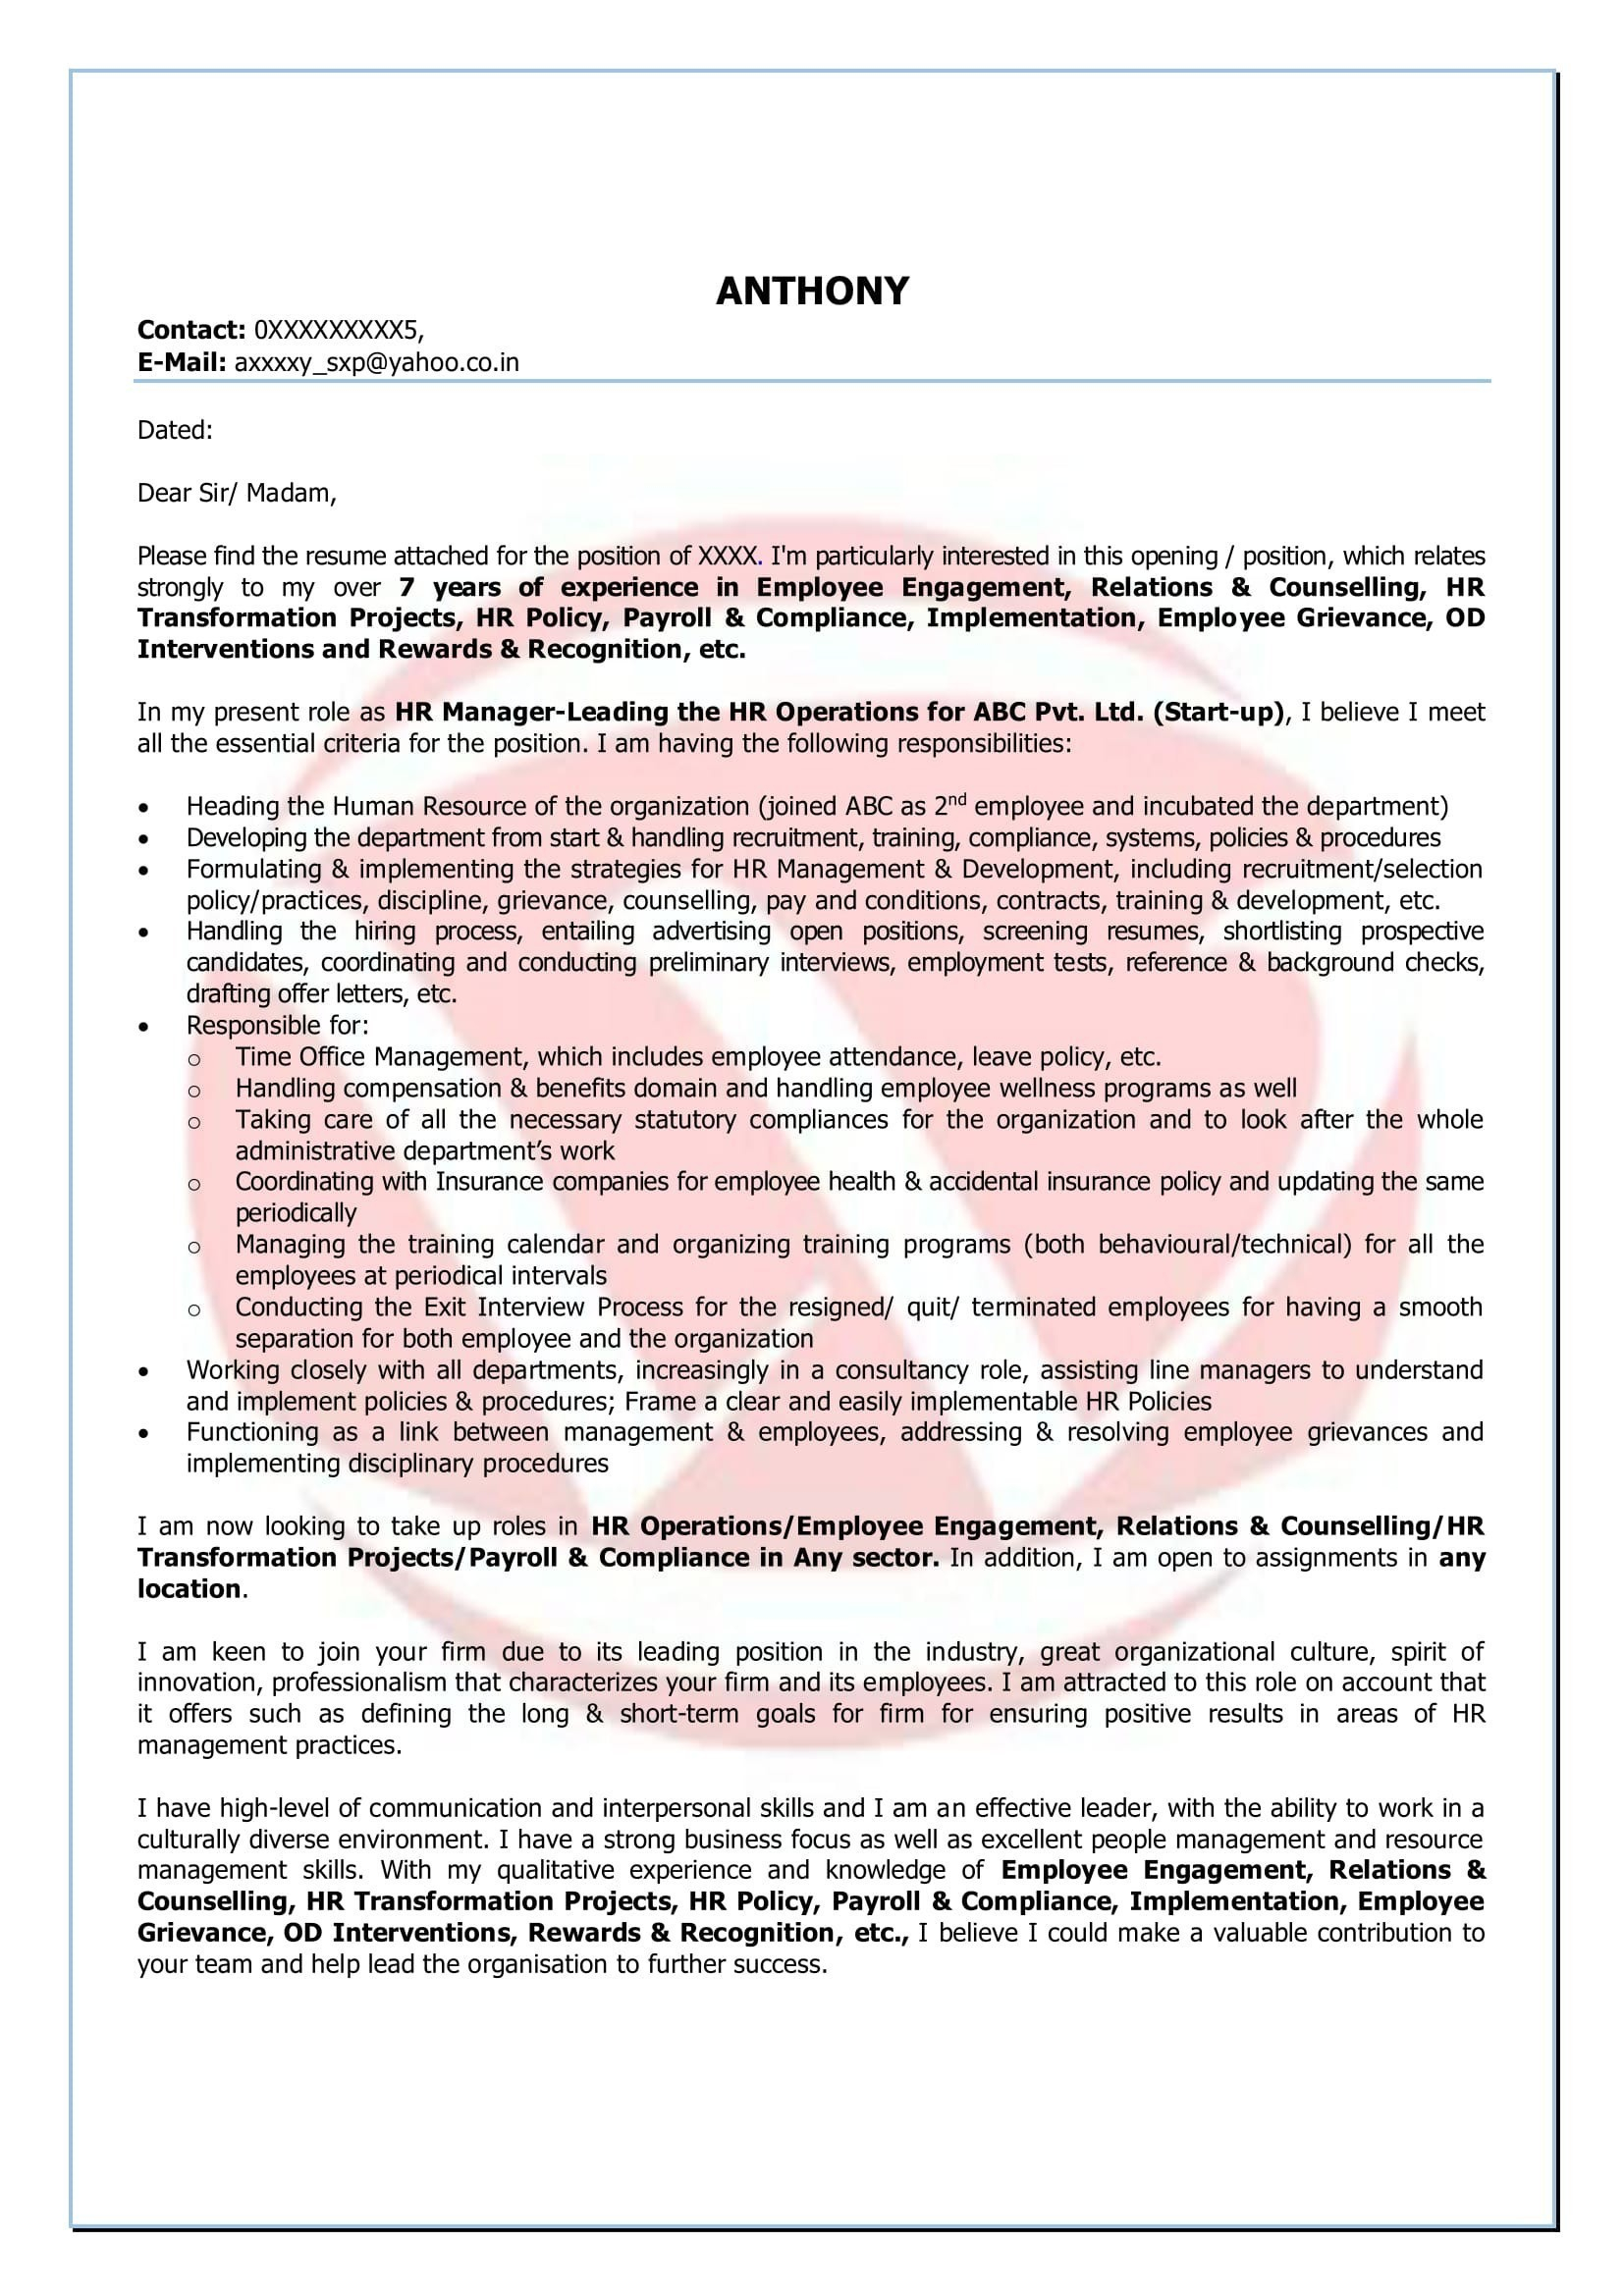 Appeal Letter Template - Grievance Appeal Letter Template